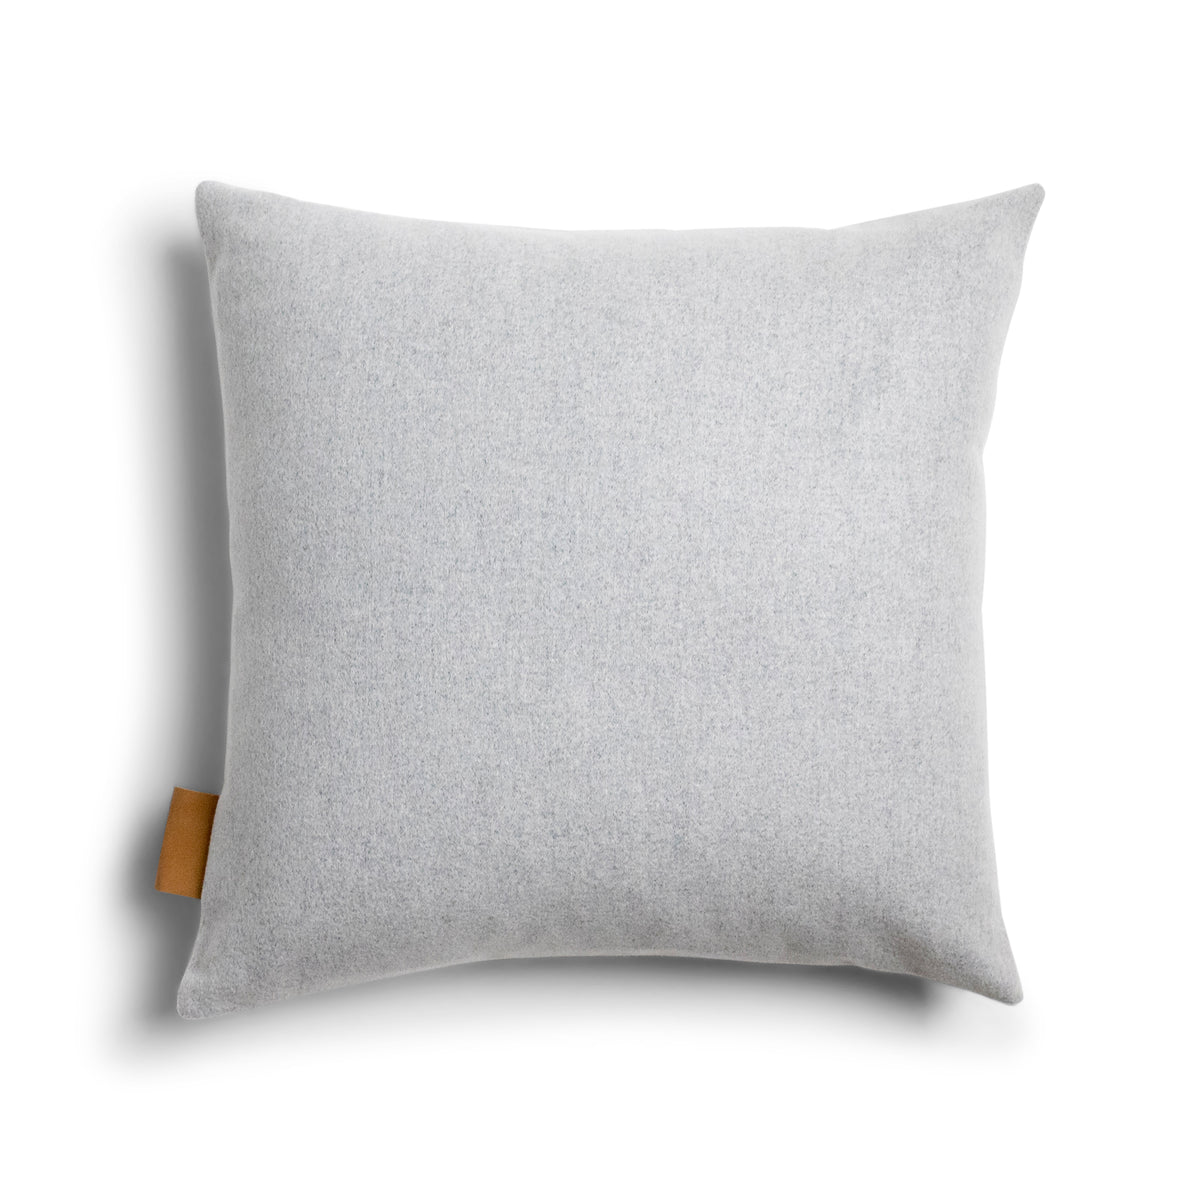 Frankie Square Cushion Cover - Light Grey